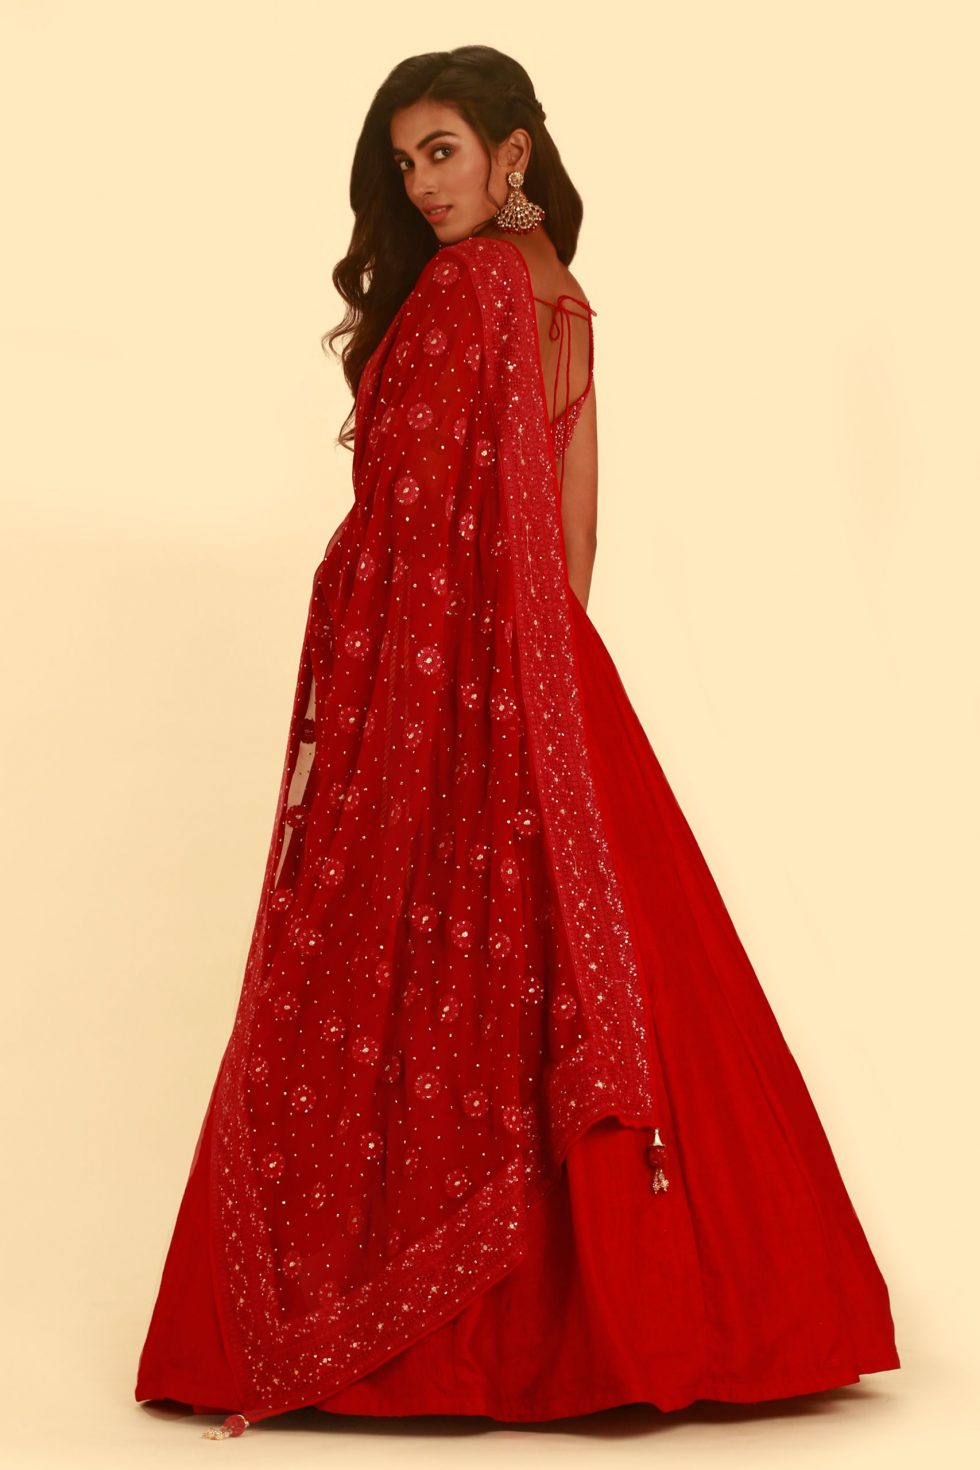 Scarlet red lehenga set with matching blouse and thread embroidered dupatta with gold embellishments